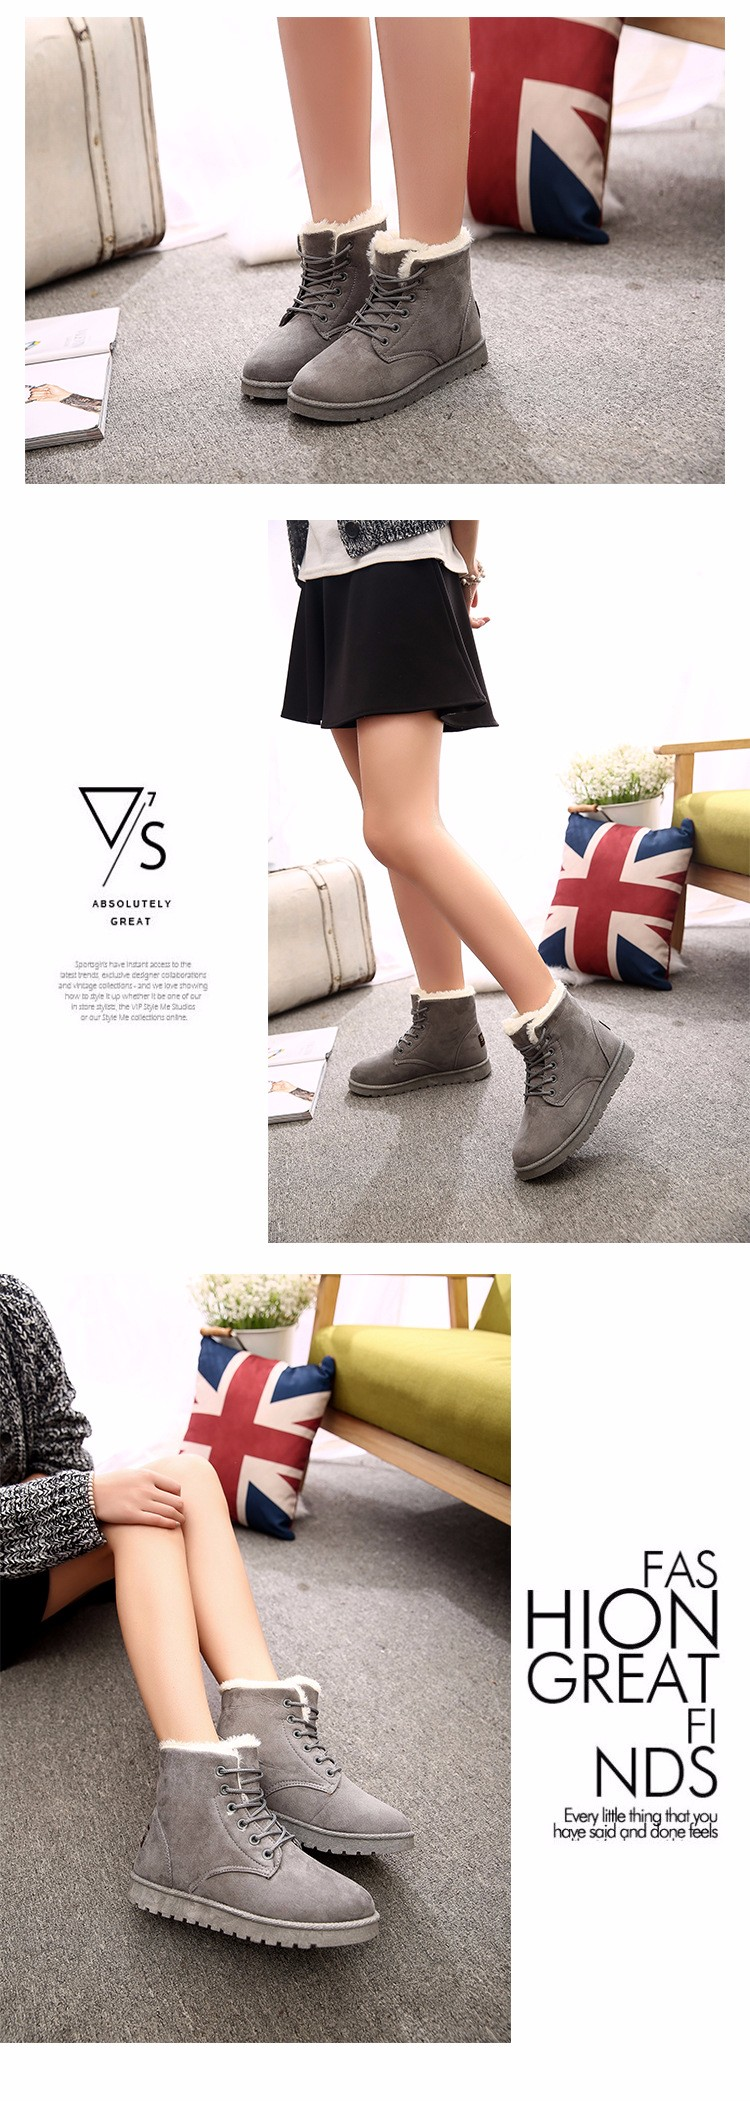 2016 Winter Woman Boots Lace-up Solid Flat Ankle Boots Casual Round Toe Woman Shoes Fashion Warm Plus Cotton Shoes ST903 (4)